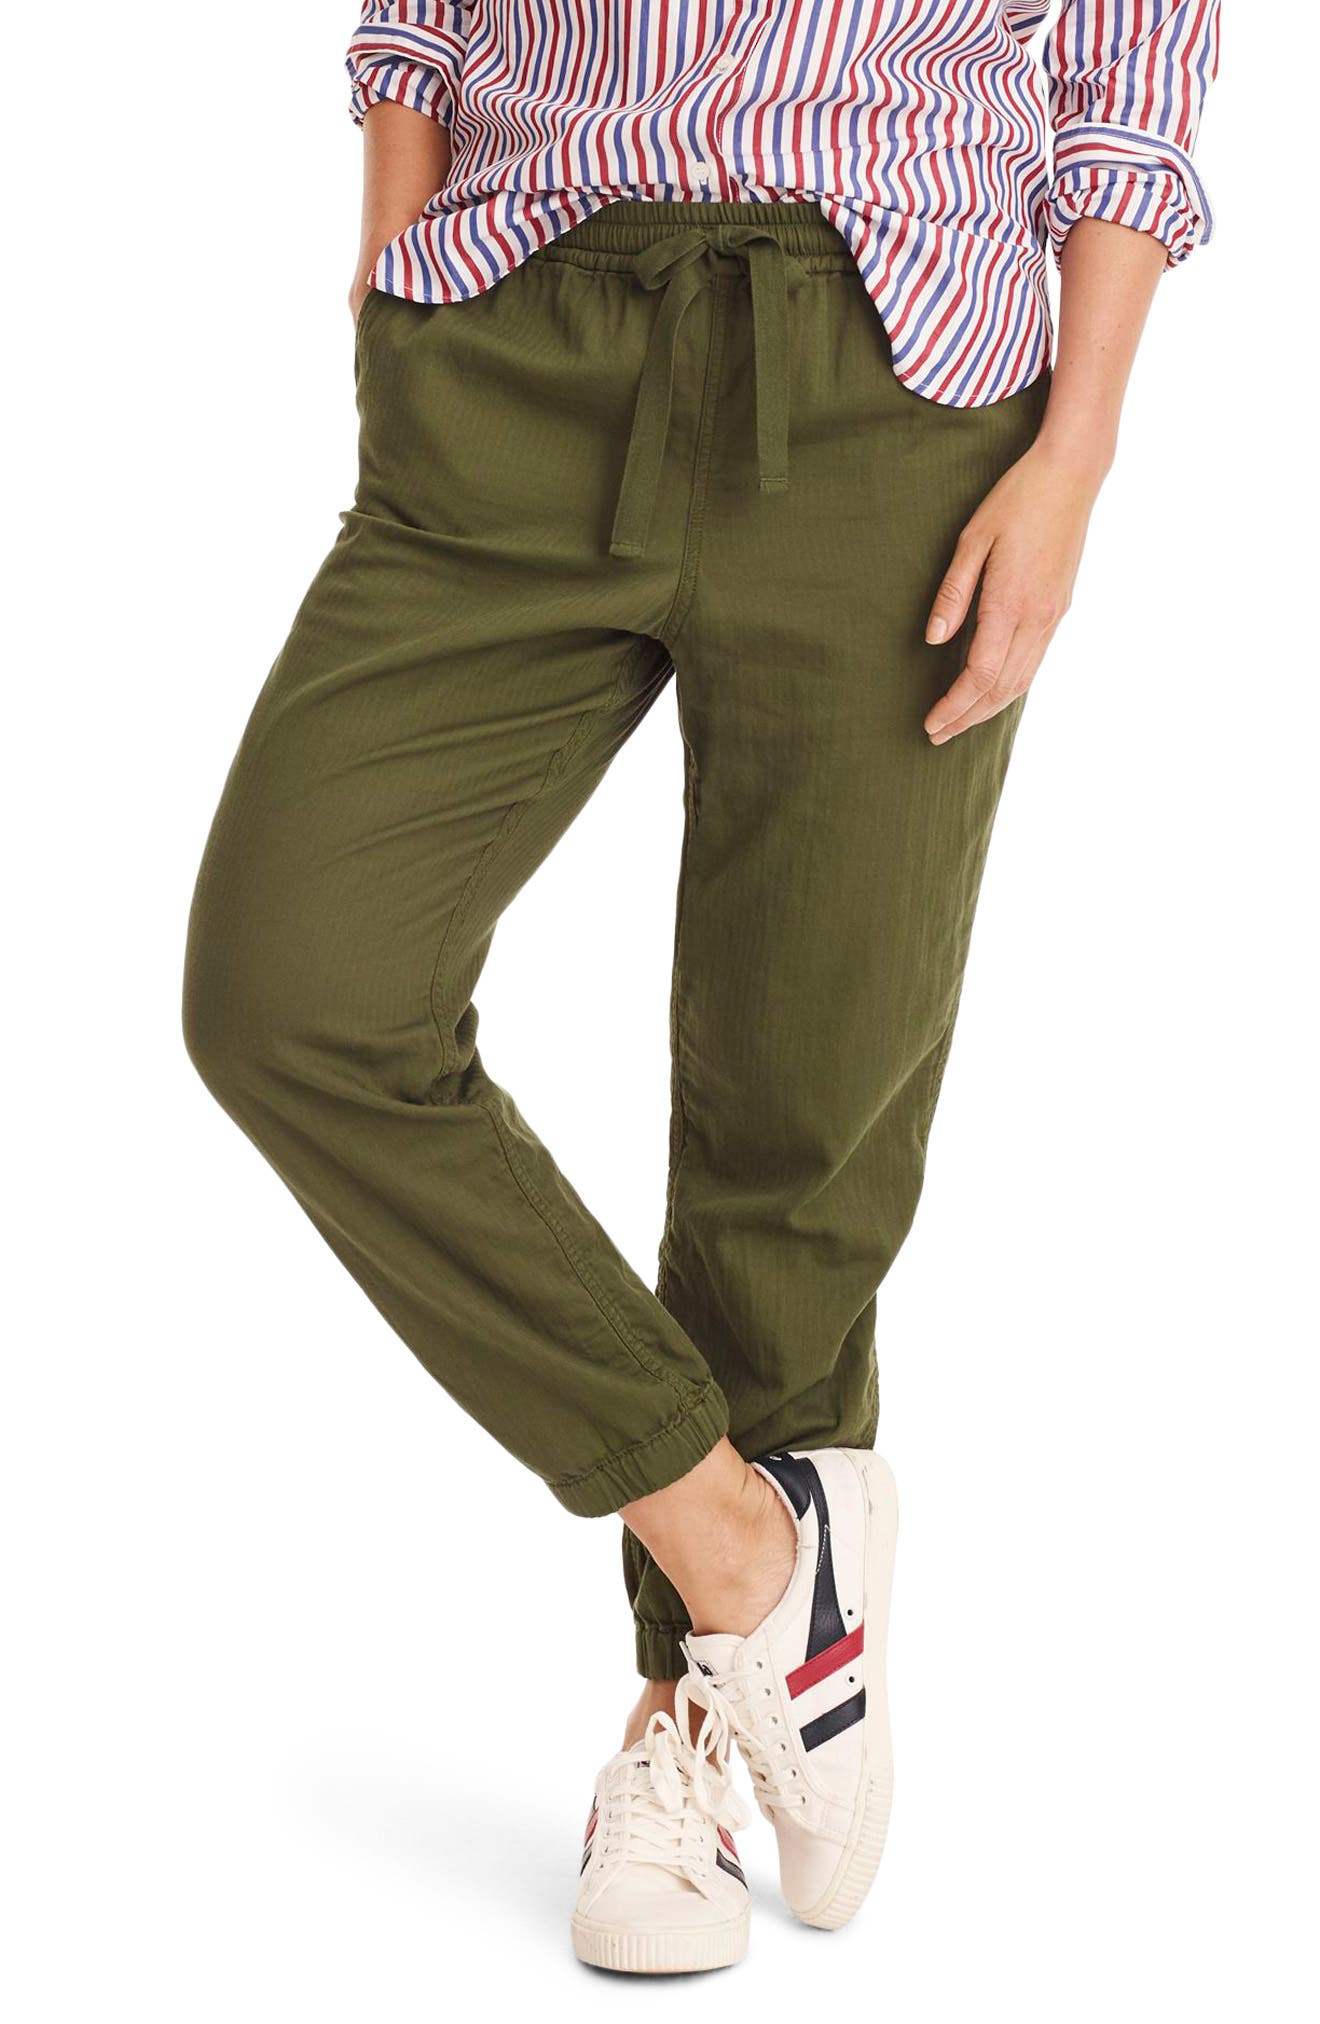 Galicia Pull-On Cargo Pants,                         Main,                         color, 300